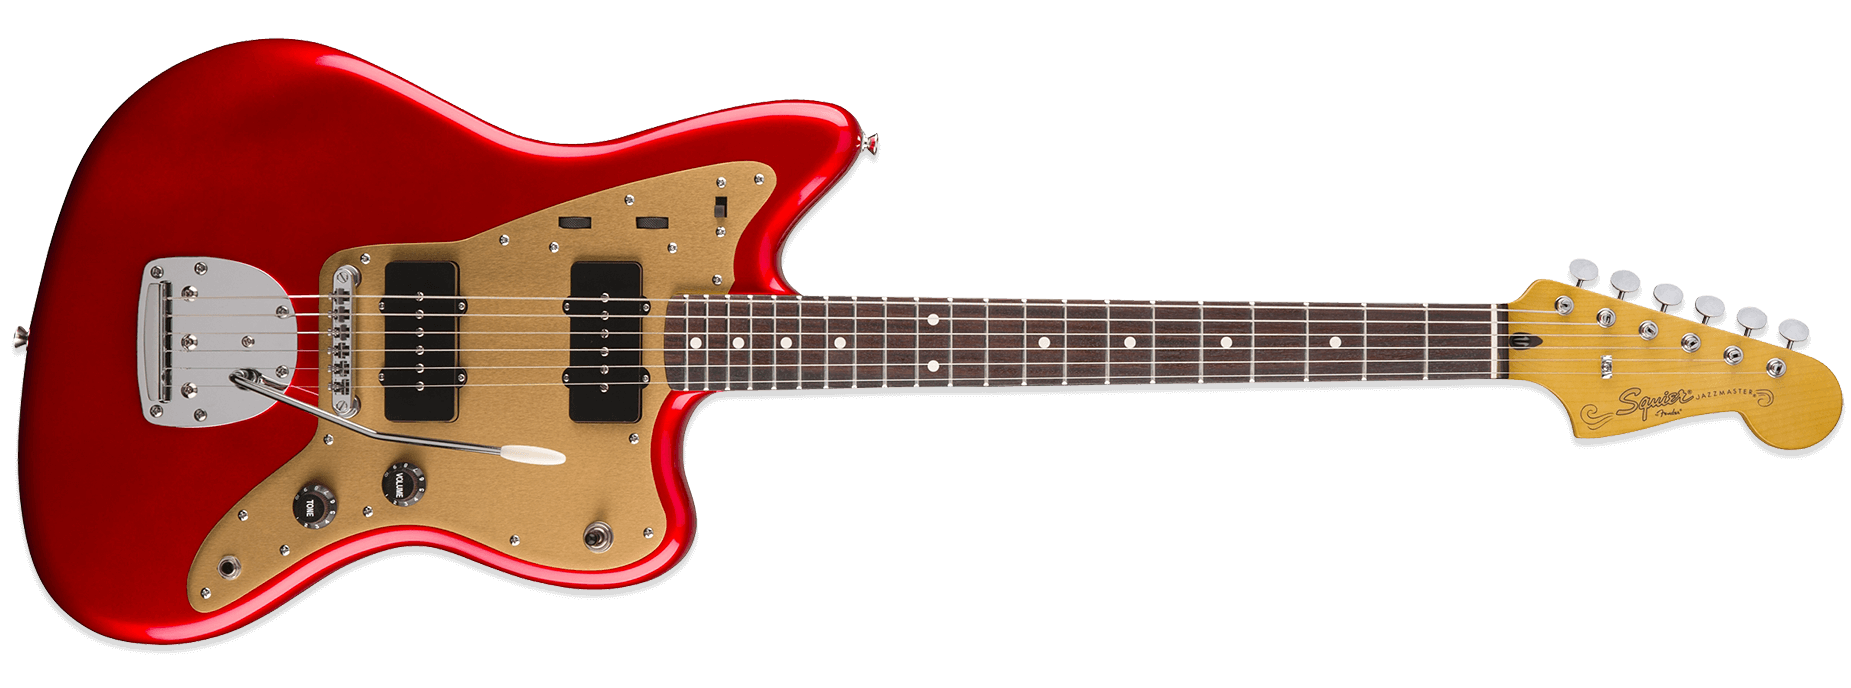 Squier Deluxe Jazzmaster Tremolo Candy Apple Red